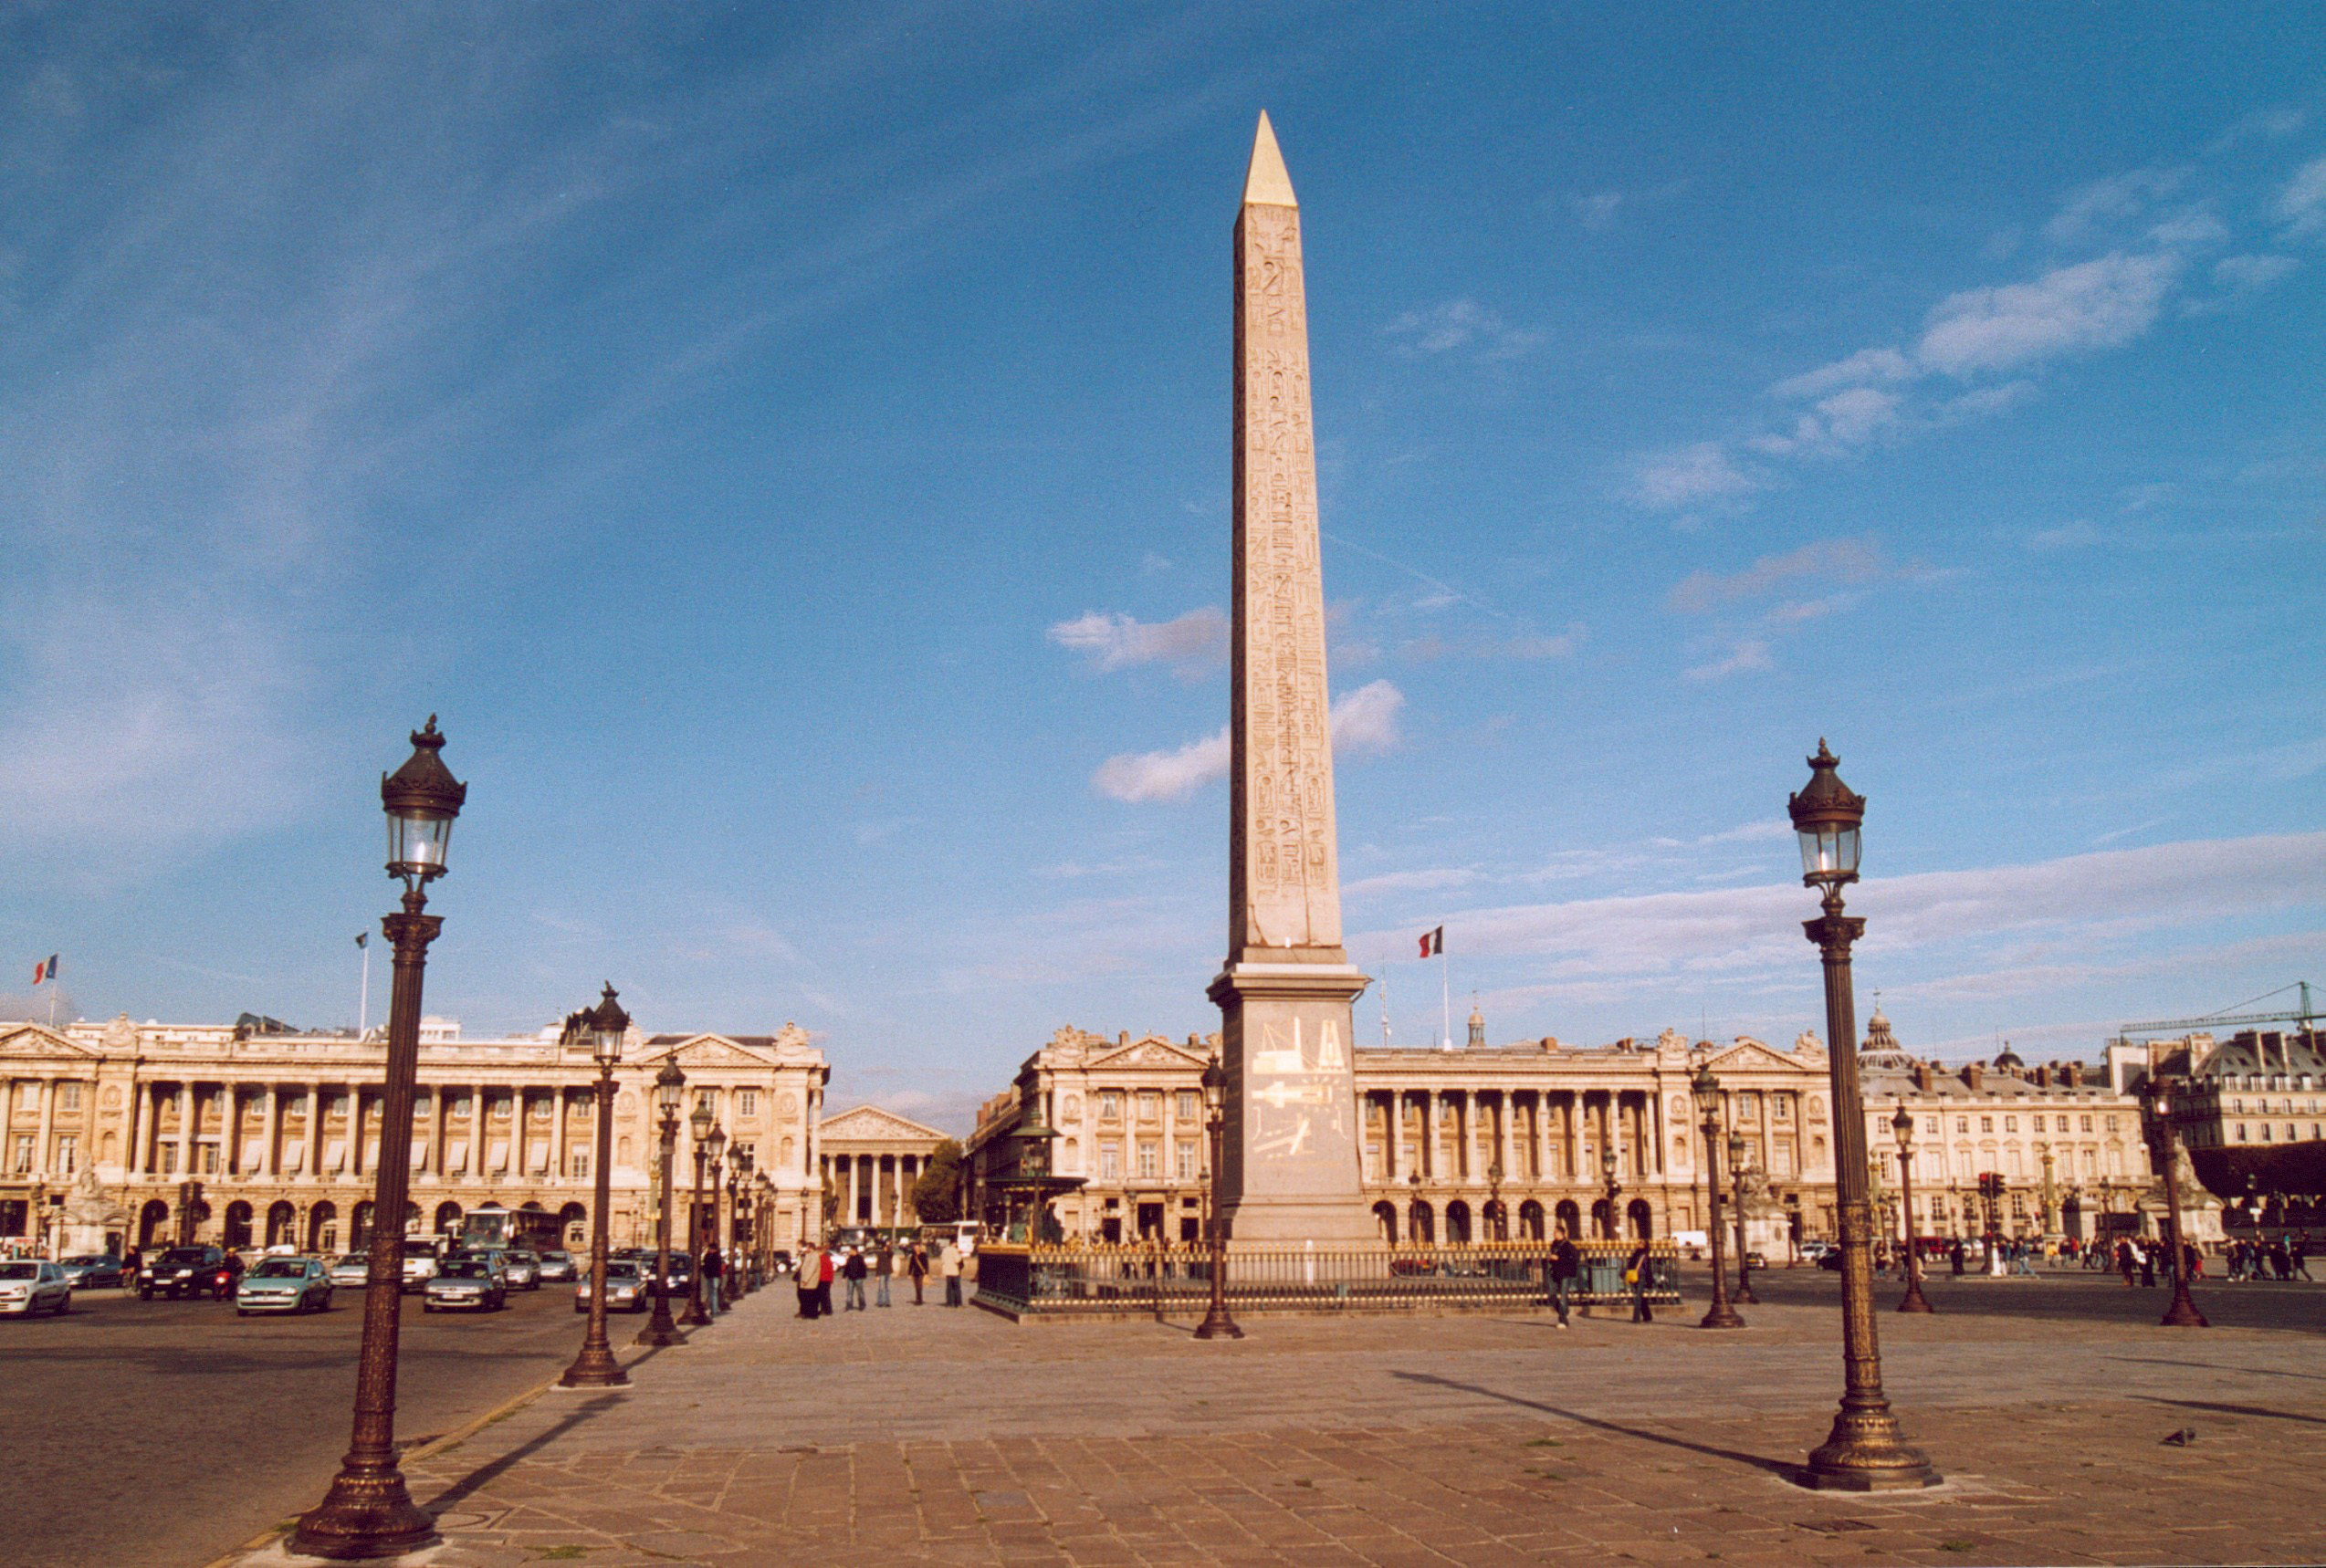 File:Place de la Concorde Paris 02.jpg - Wikimedia Commons